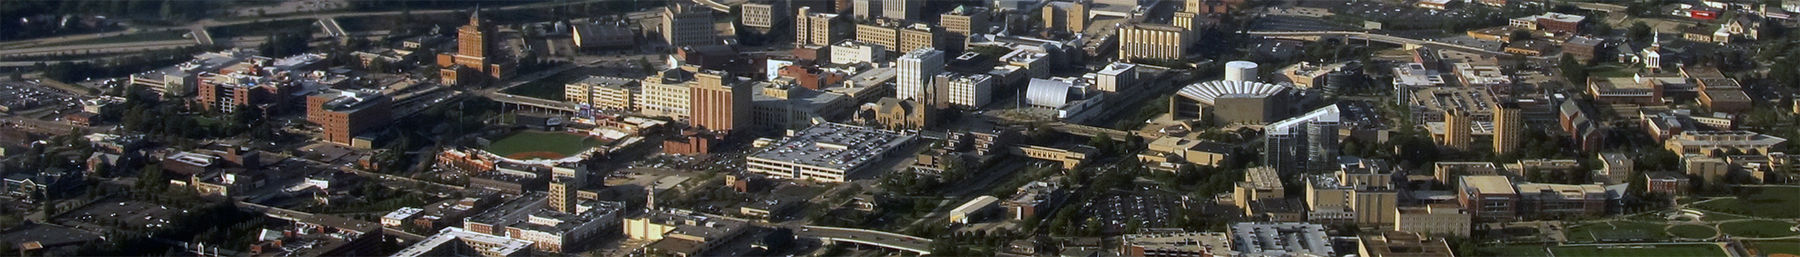 Akron from above banner.jpg